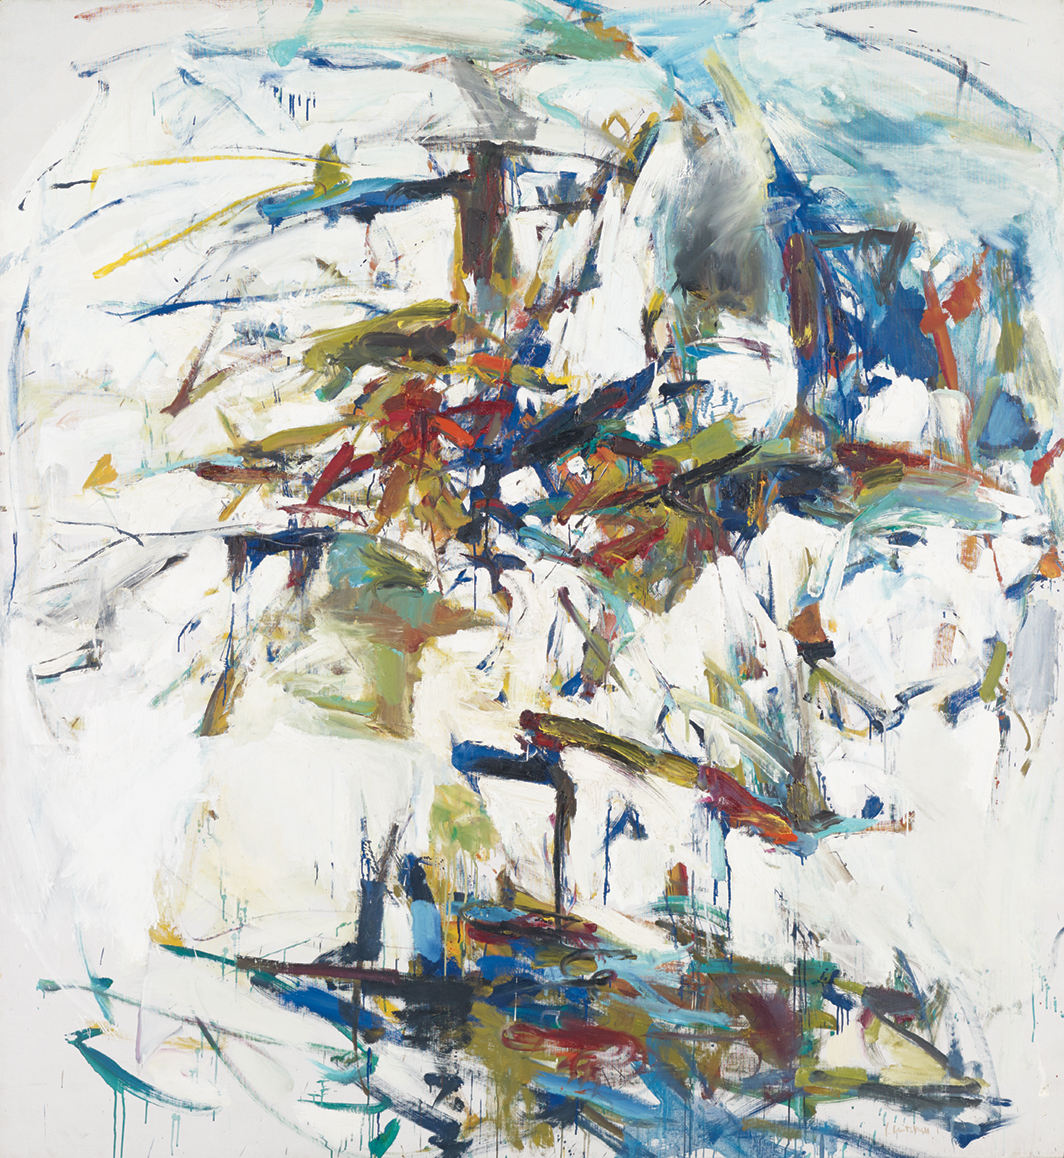 """Joan Mitchell, George Went Swimming at Barnes Hole, but It Got Too Cold, 1957, oil on canvas, 87 3⁄4 × 78 1⁄4"""". © Estate of Joan Mitchell."""